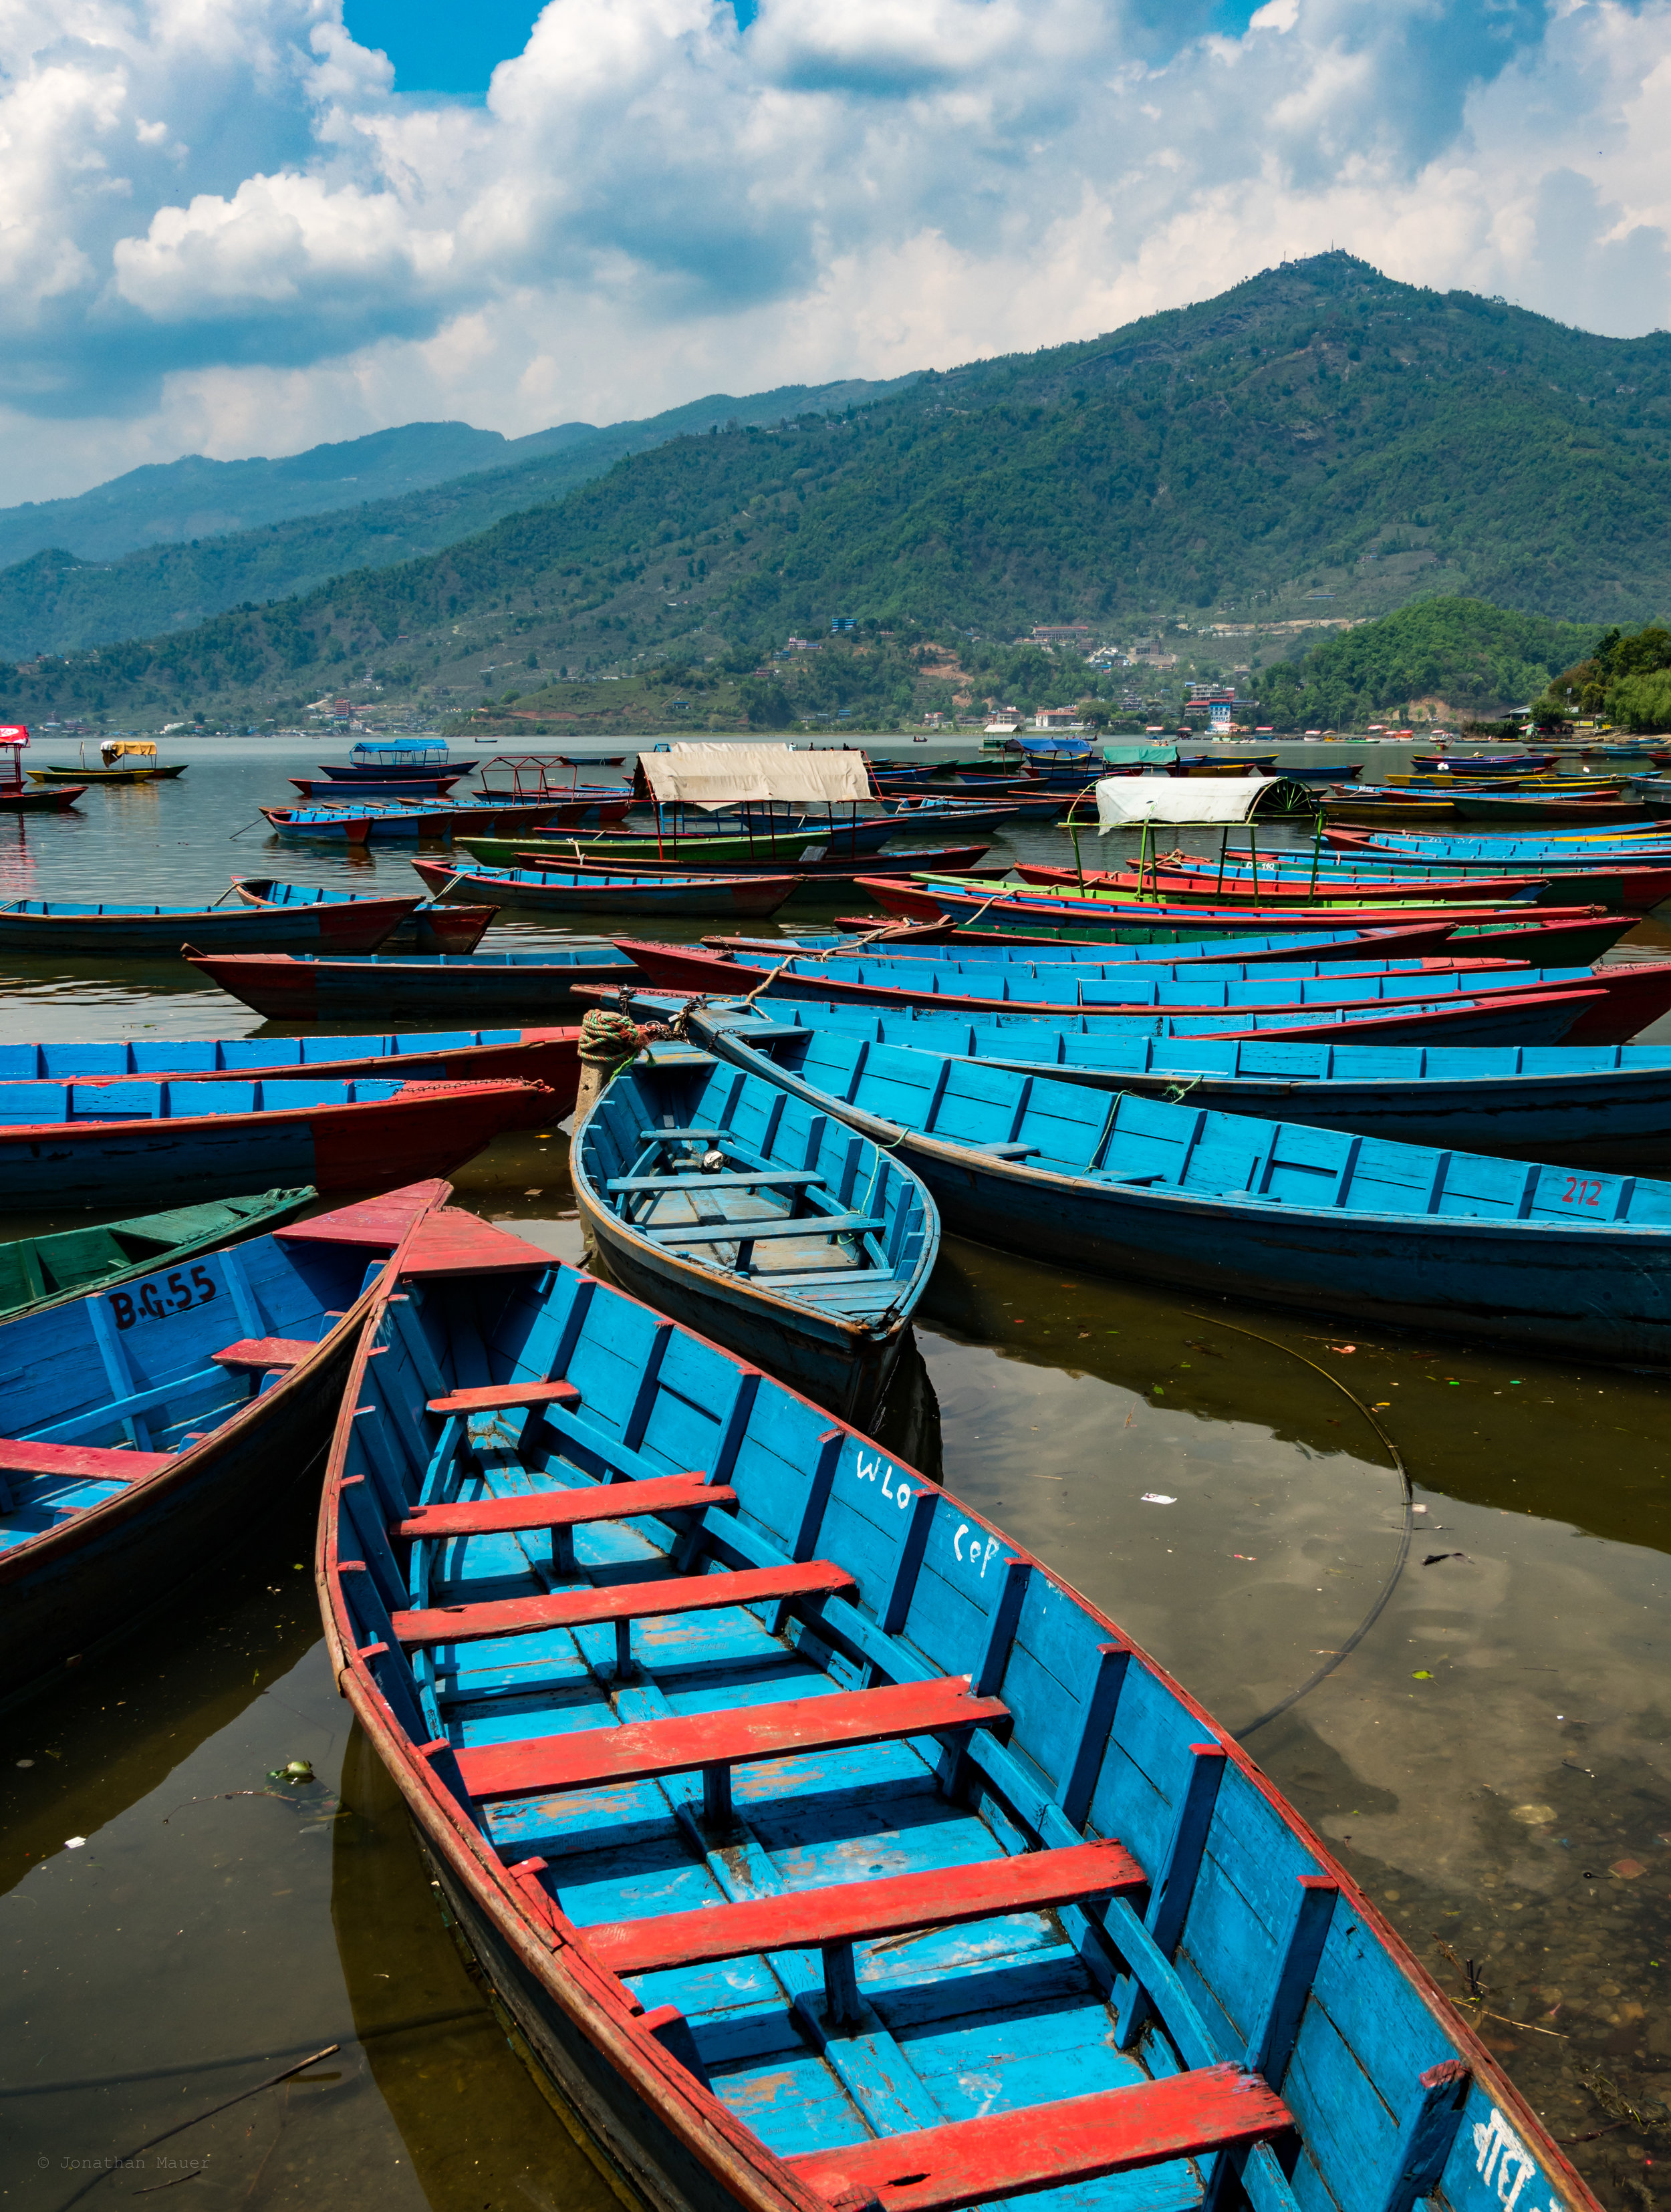 Row boats moored along the shore in Pokhara.